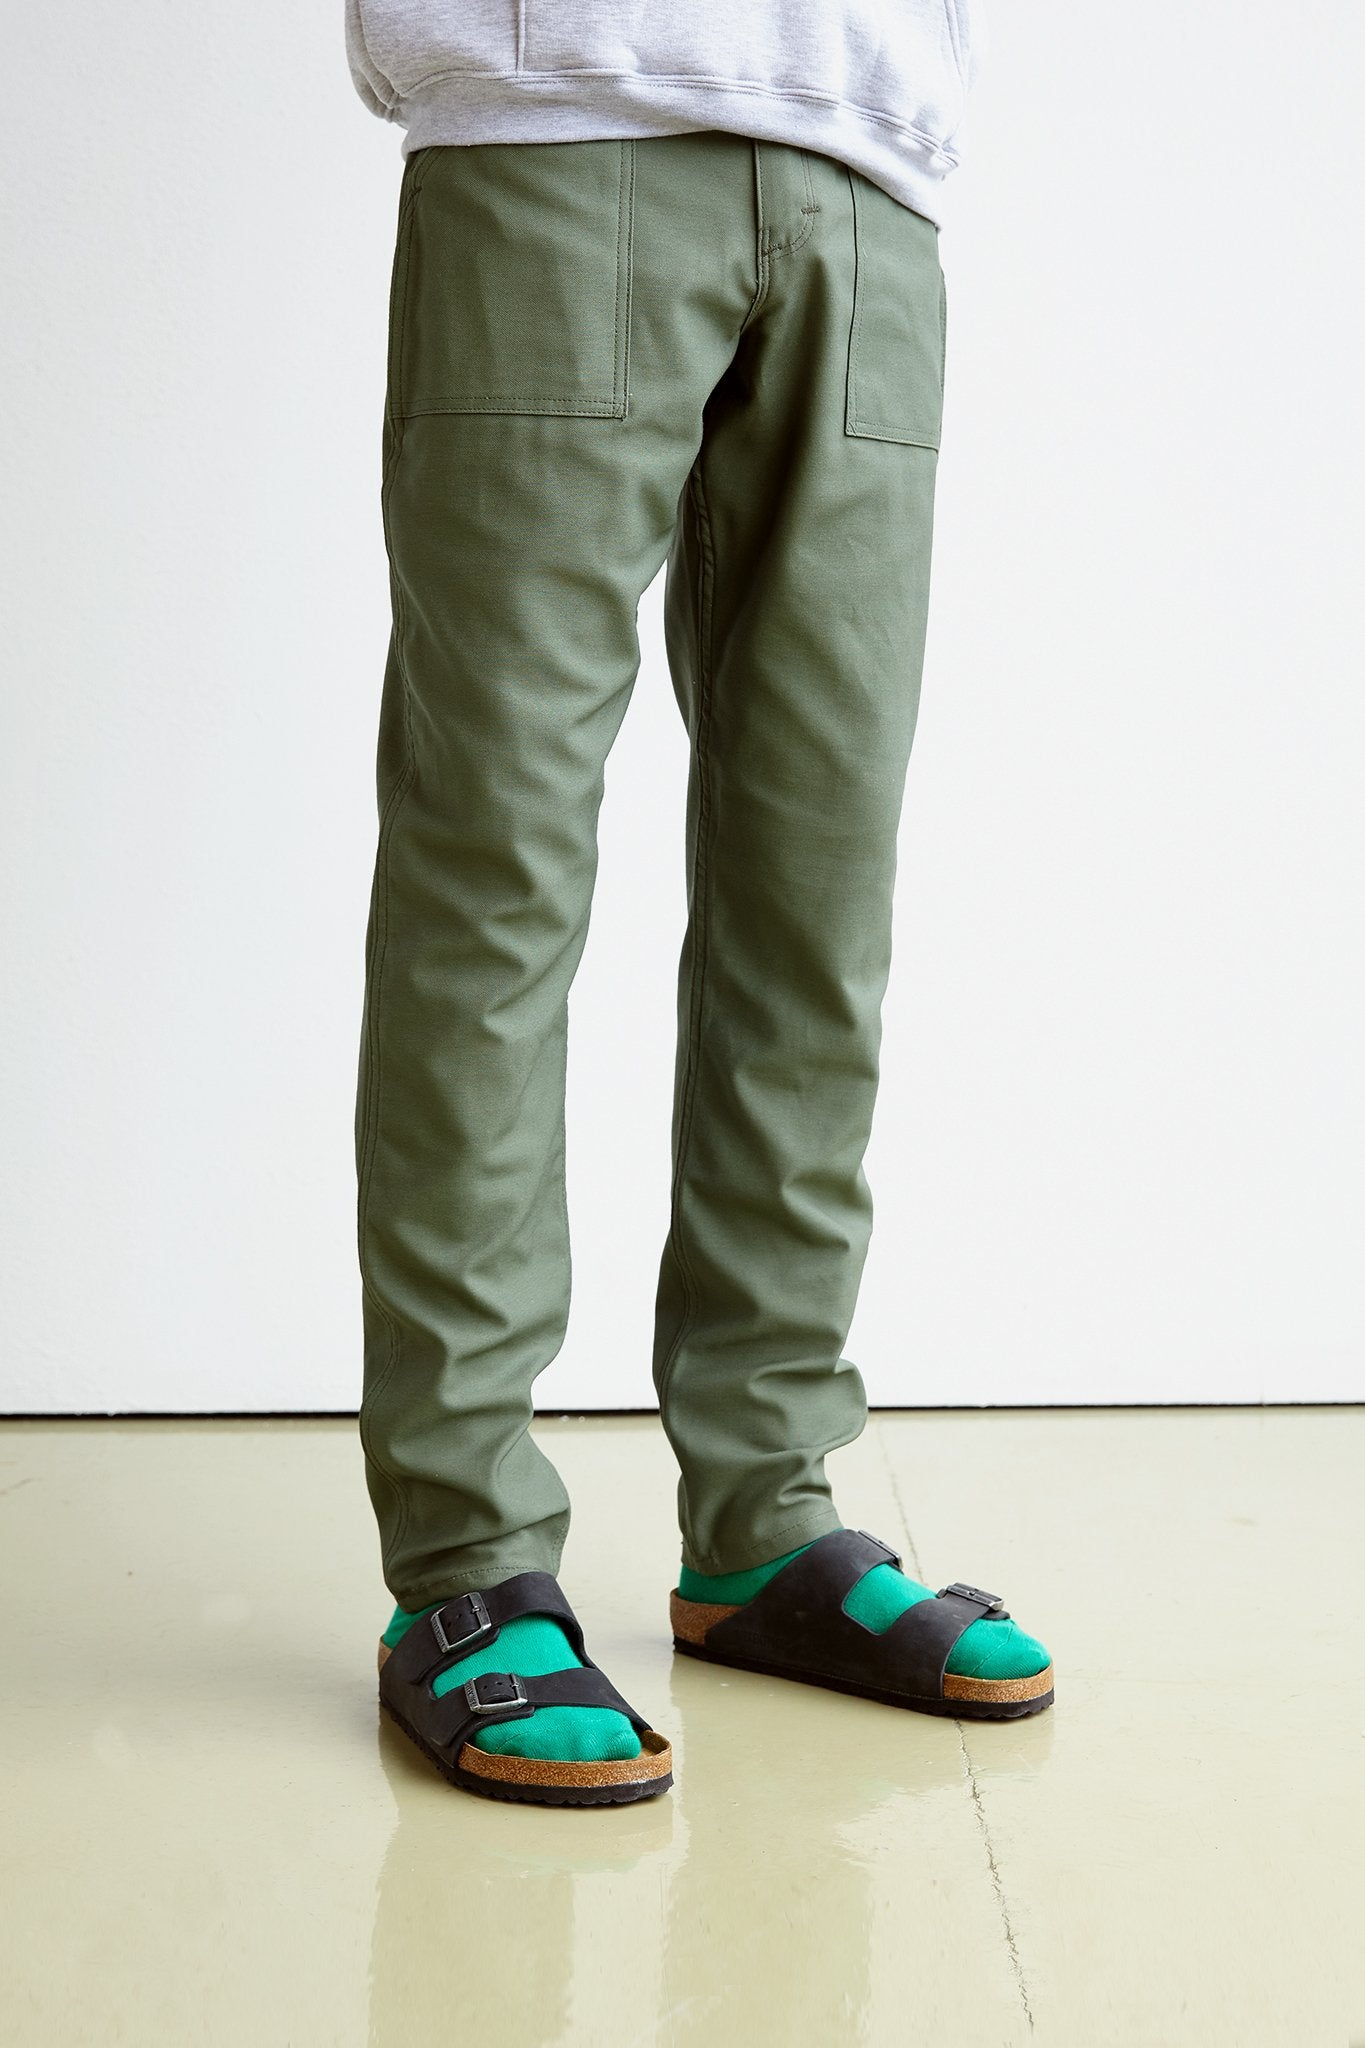 stan ray - slim fit fatigue pant 1